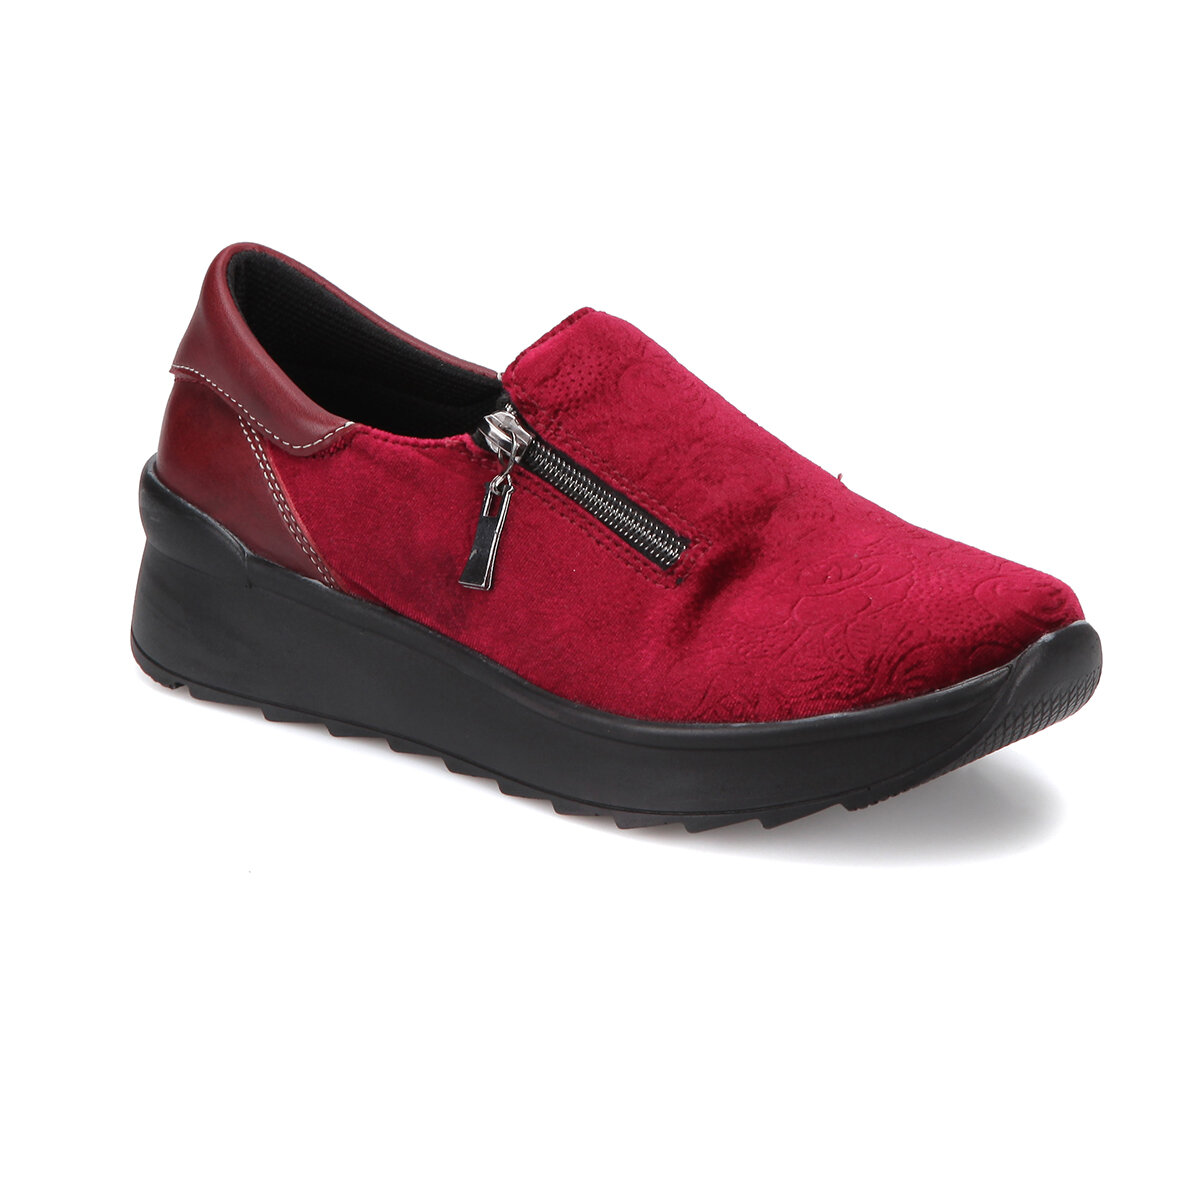 FLO Z204 Burgundy Women Slip On Shoes BUTIGO